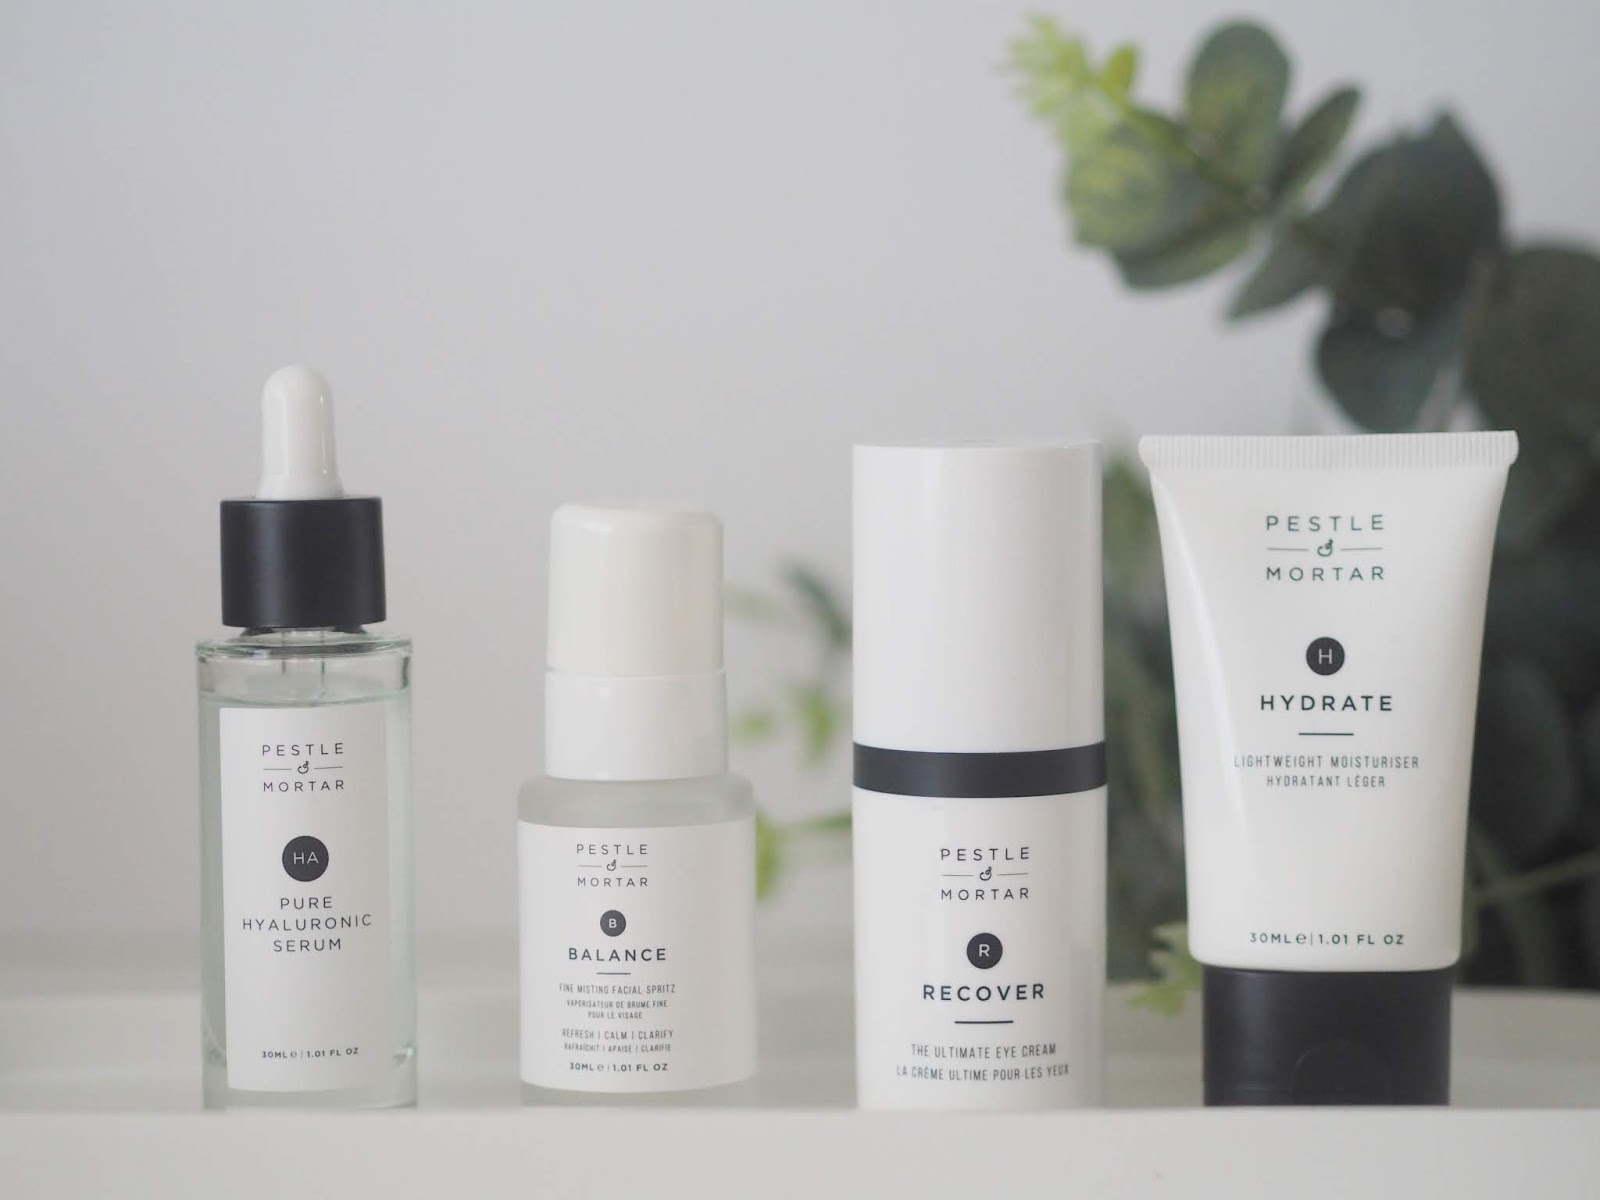 Pestle and Mortar - the Irish skincare brand you need to check out!